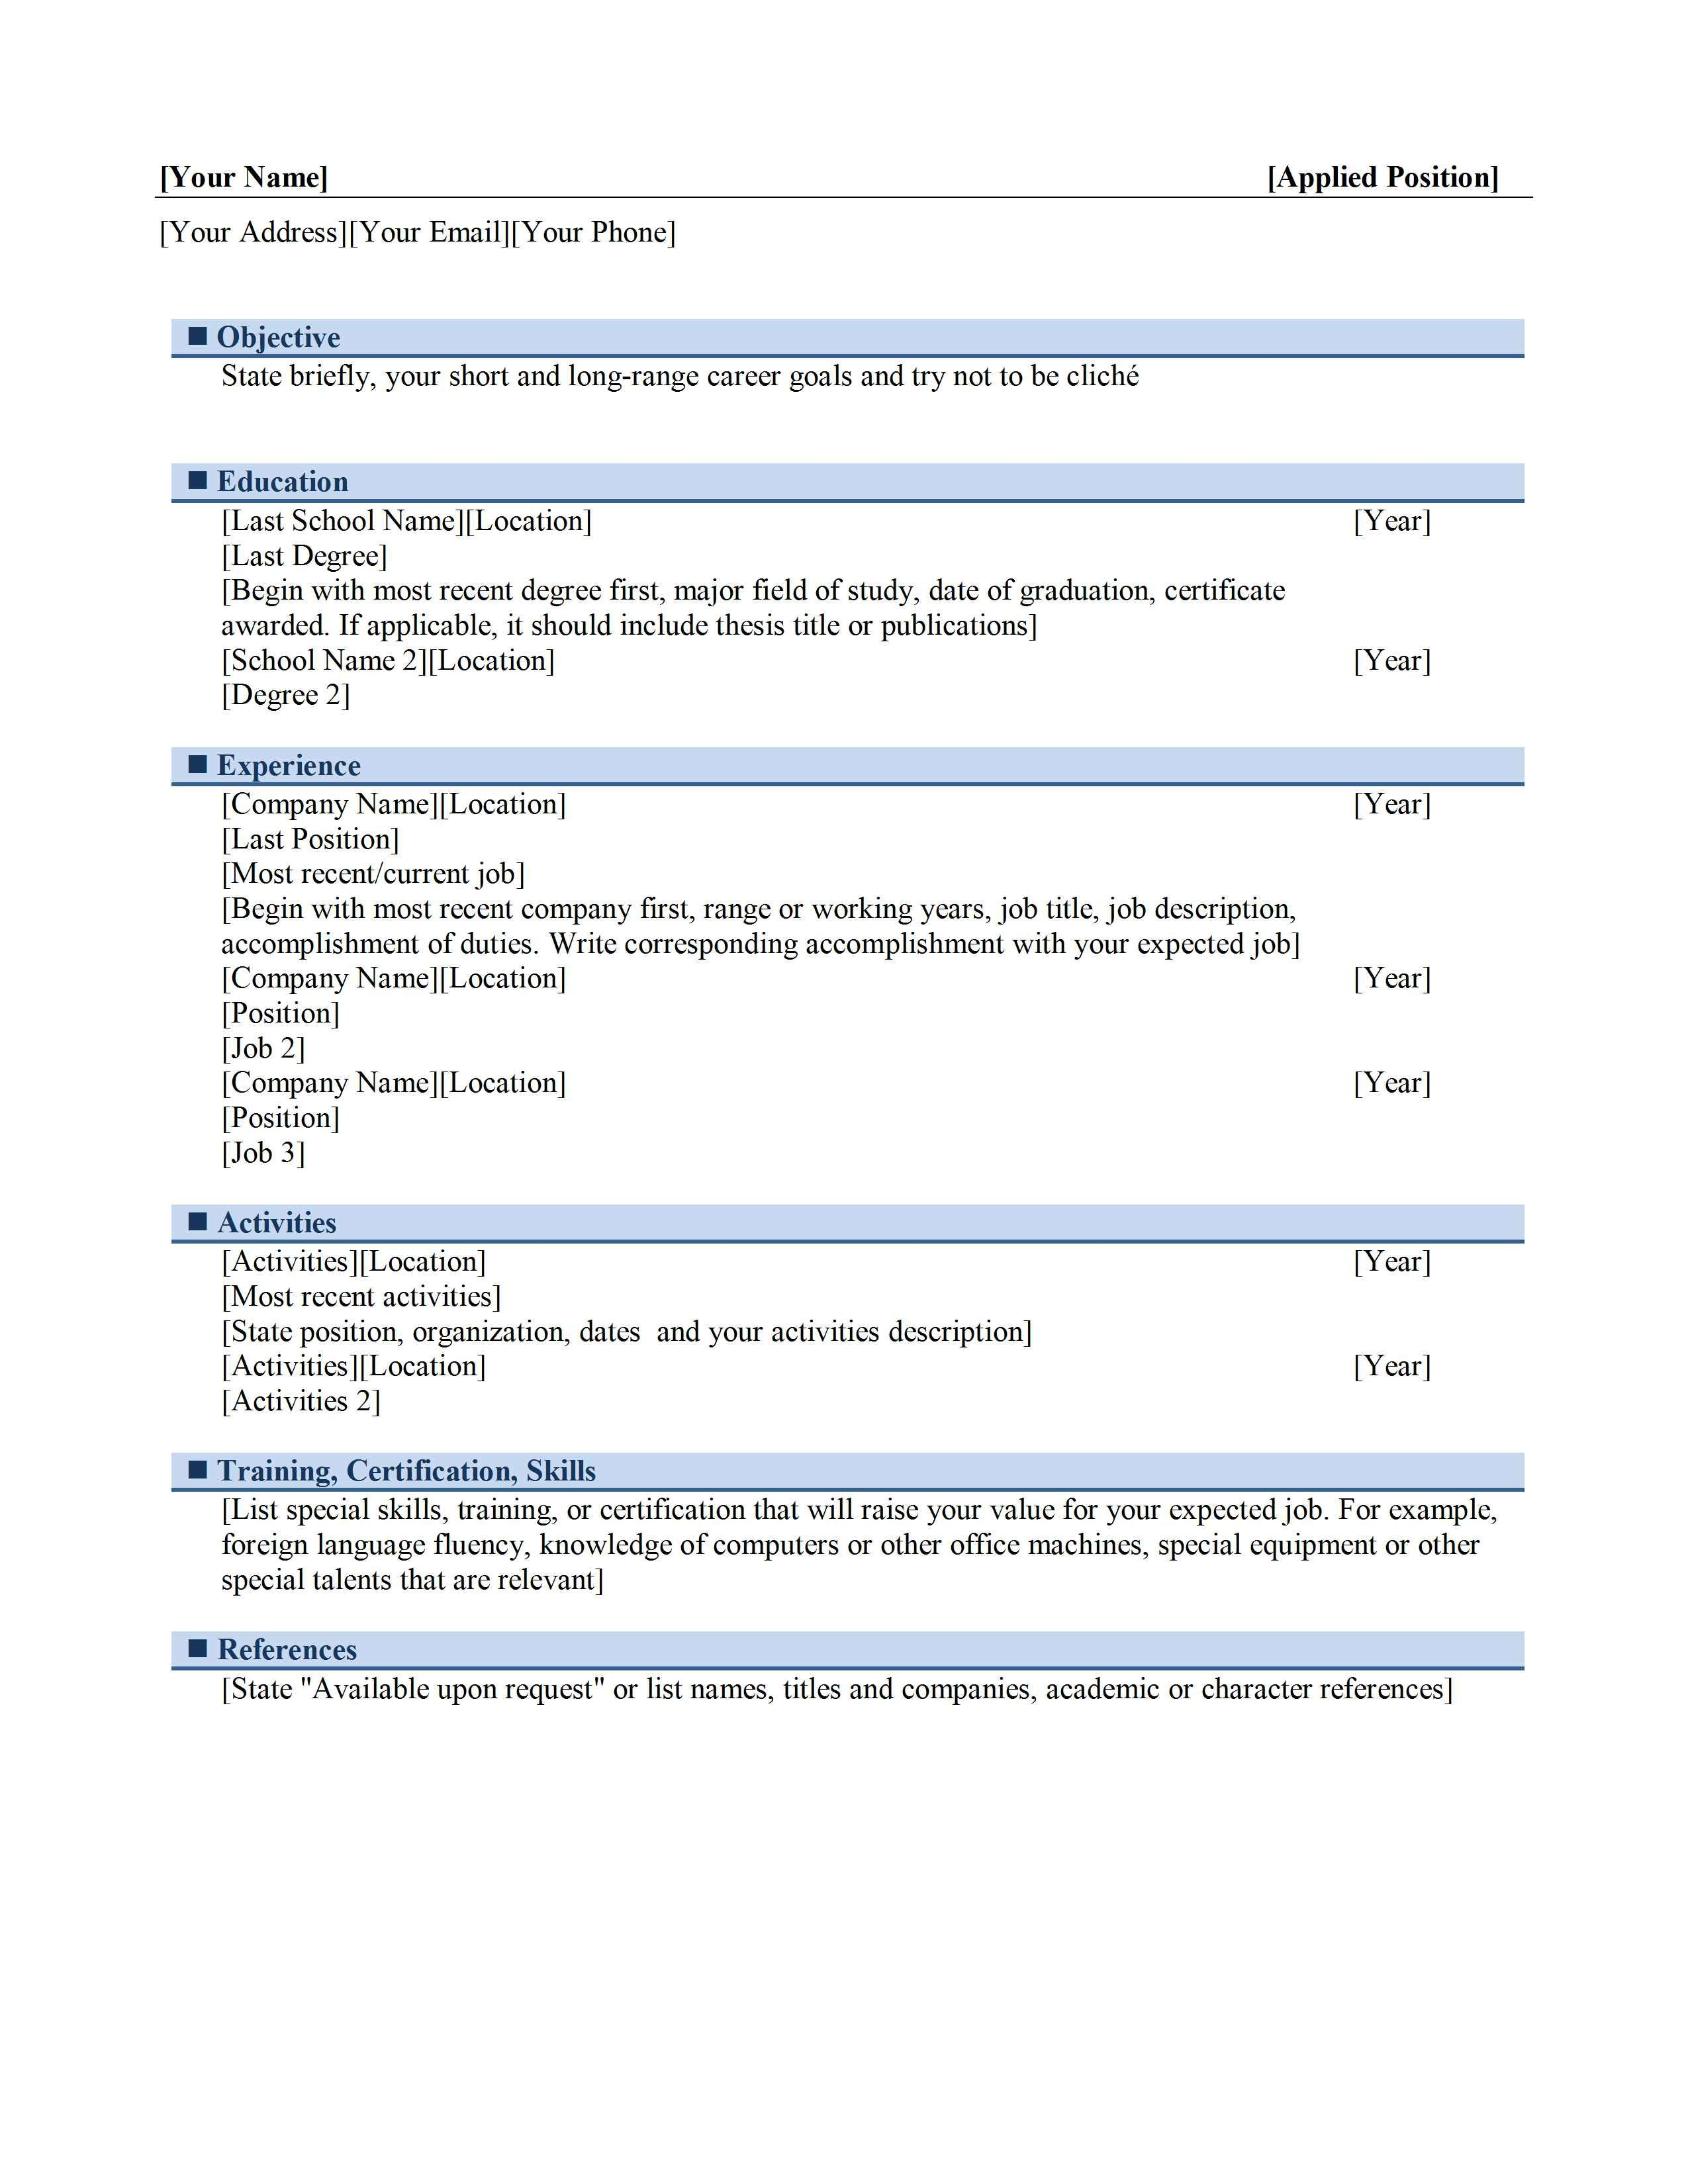 Microsoft Word Templates For Resumes Chronological Resume Template Microsoft Word Google Search